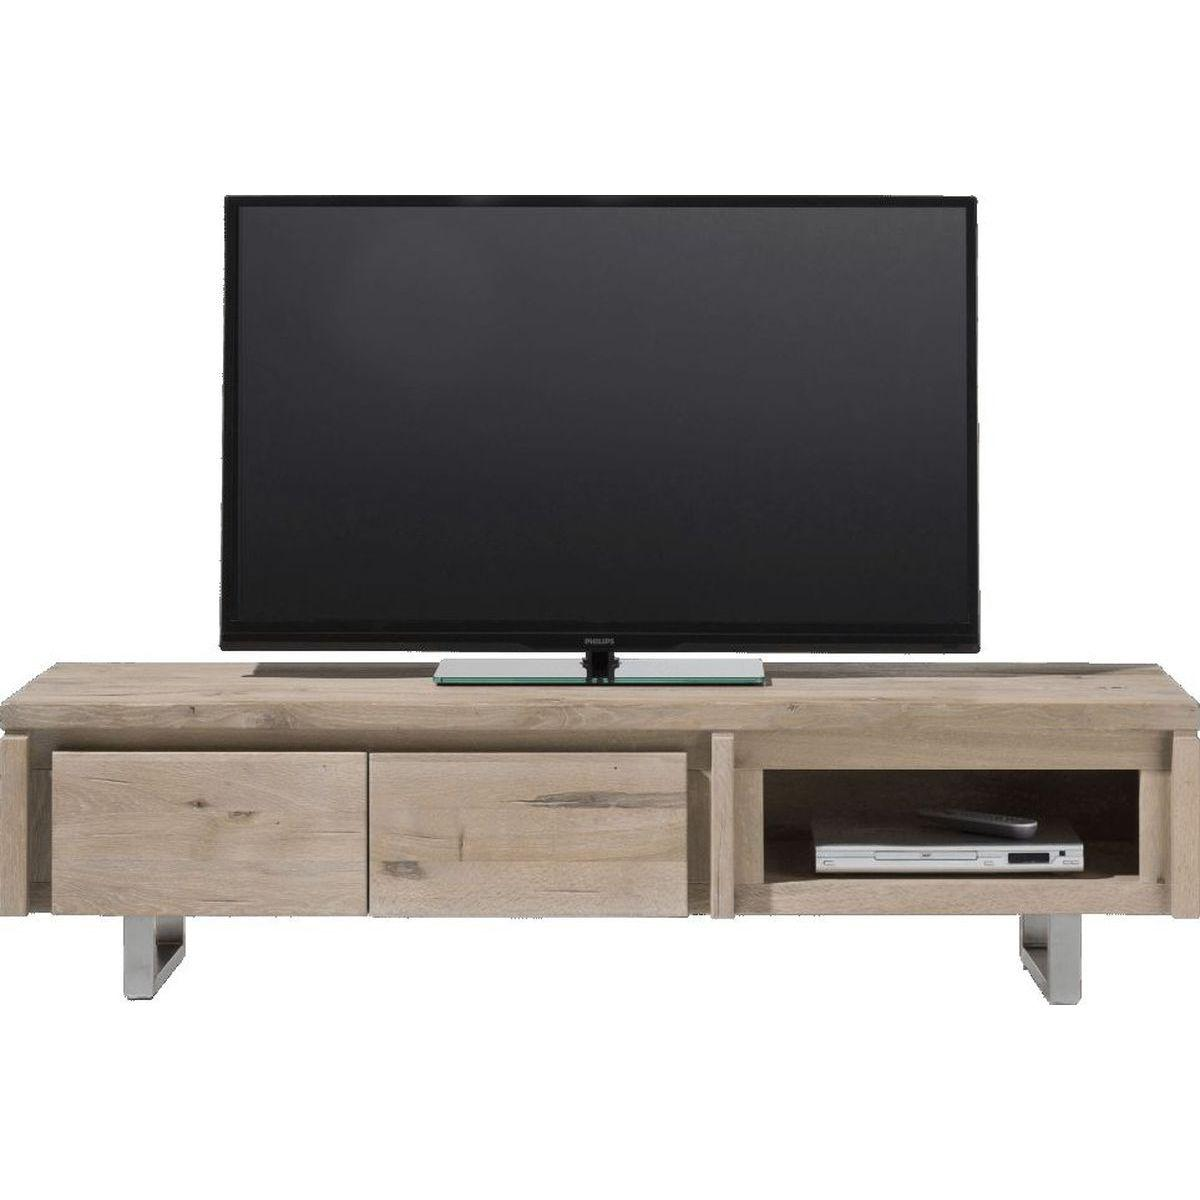 MORE by H&H Meuble TV 160cm